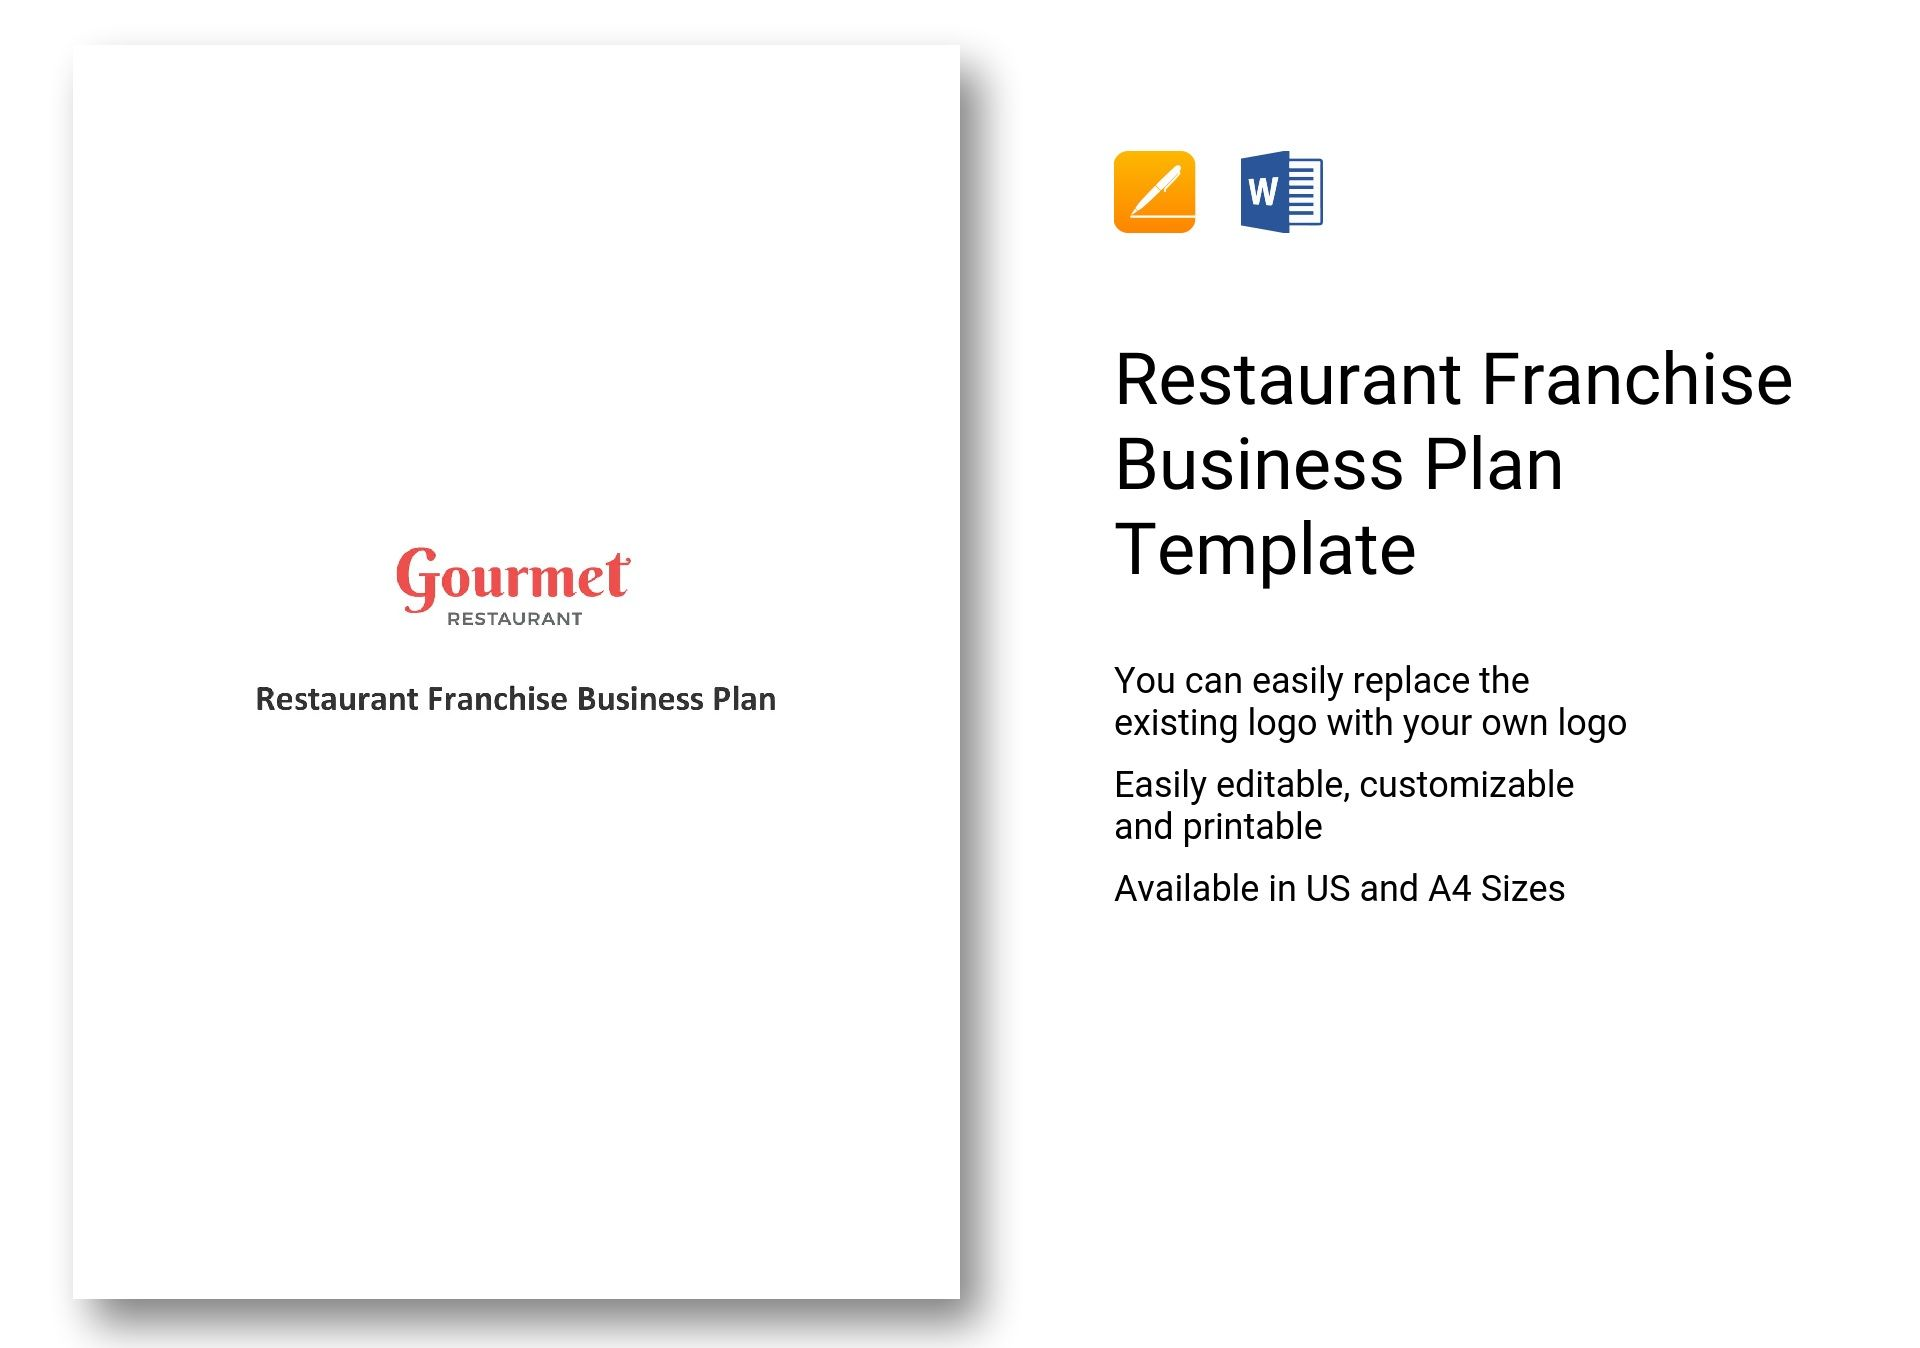 Restaurant franchise business plan template in word apple pages flashek Images